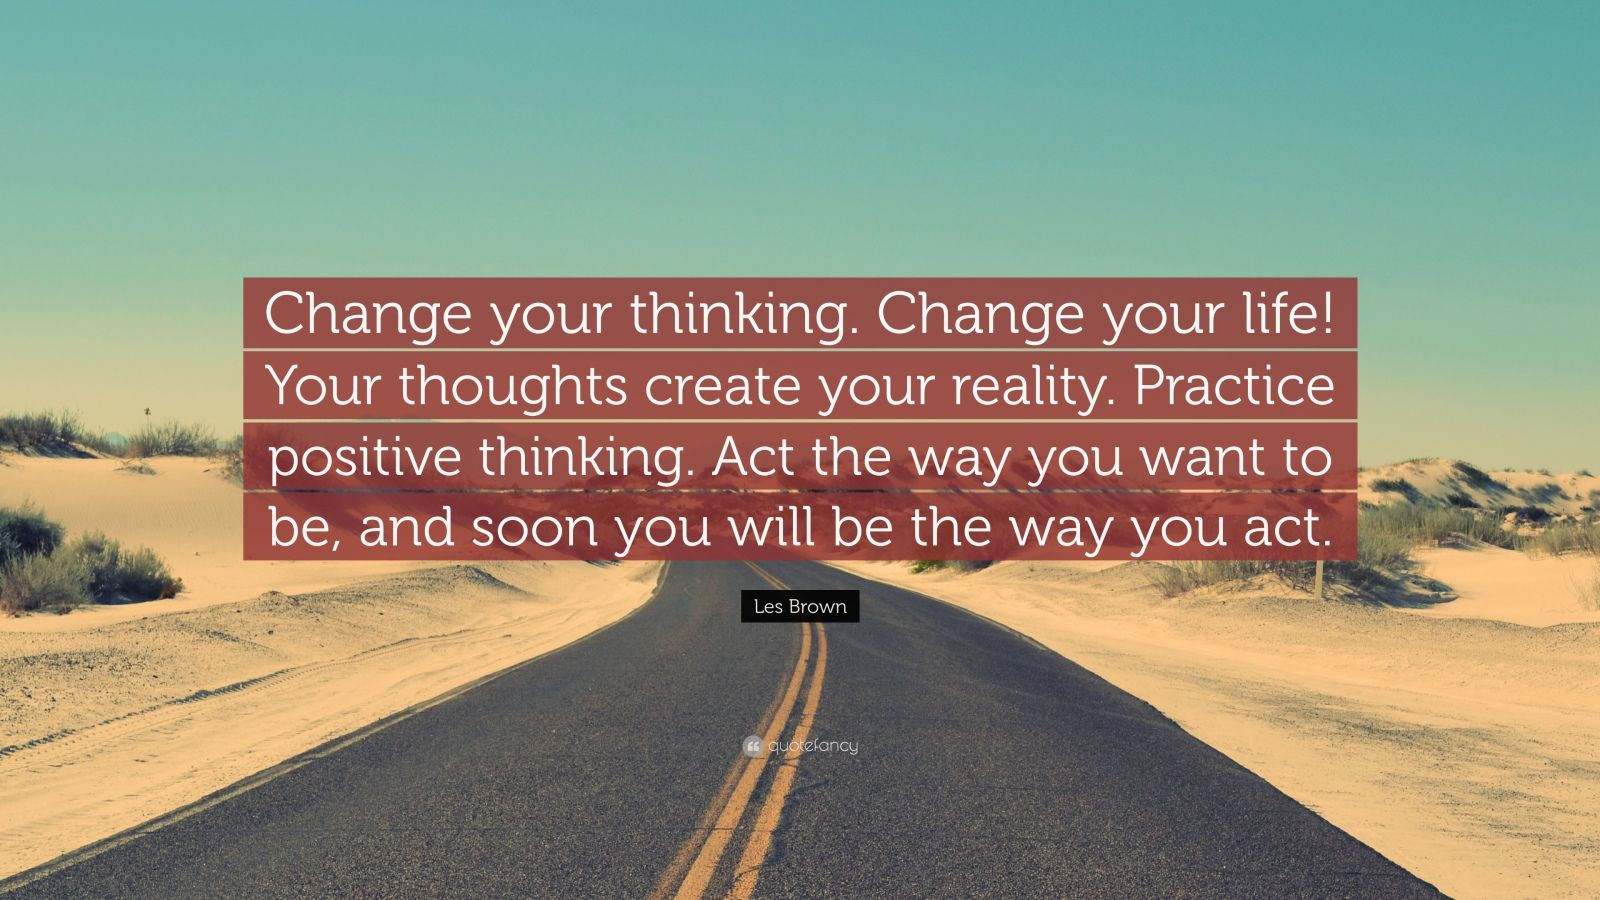 Les Brown Quote Change Your Thinking Change Your Life